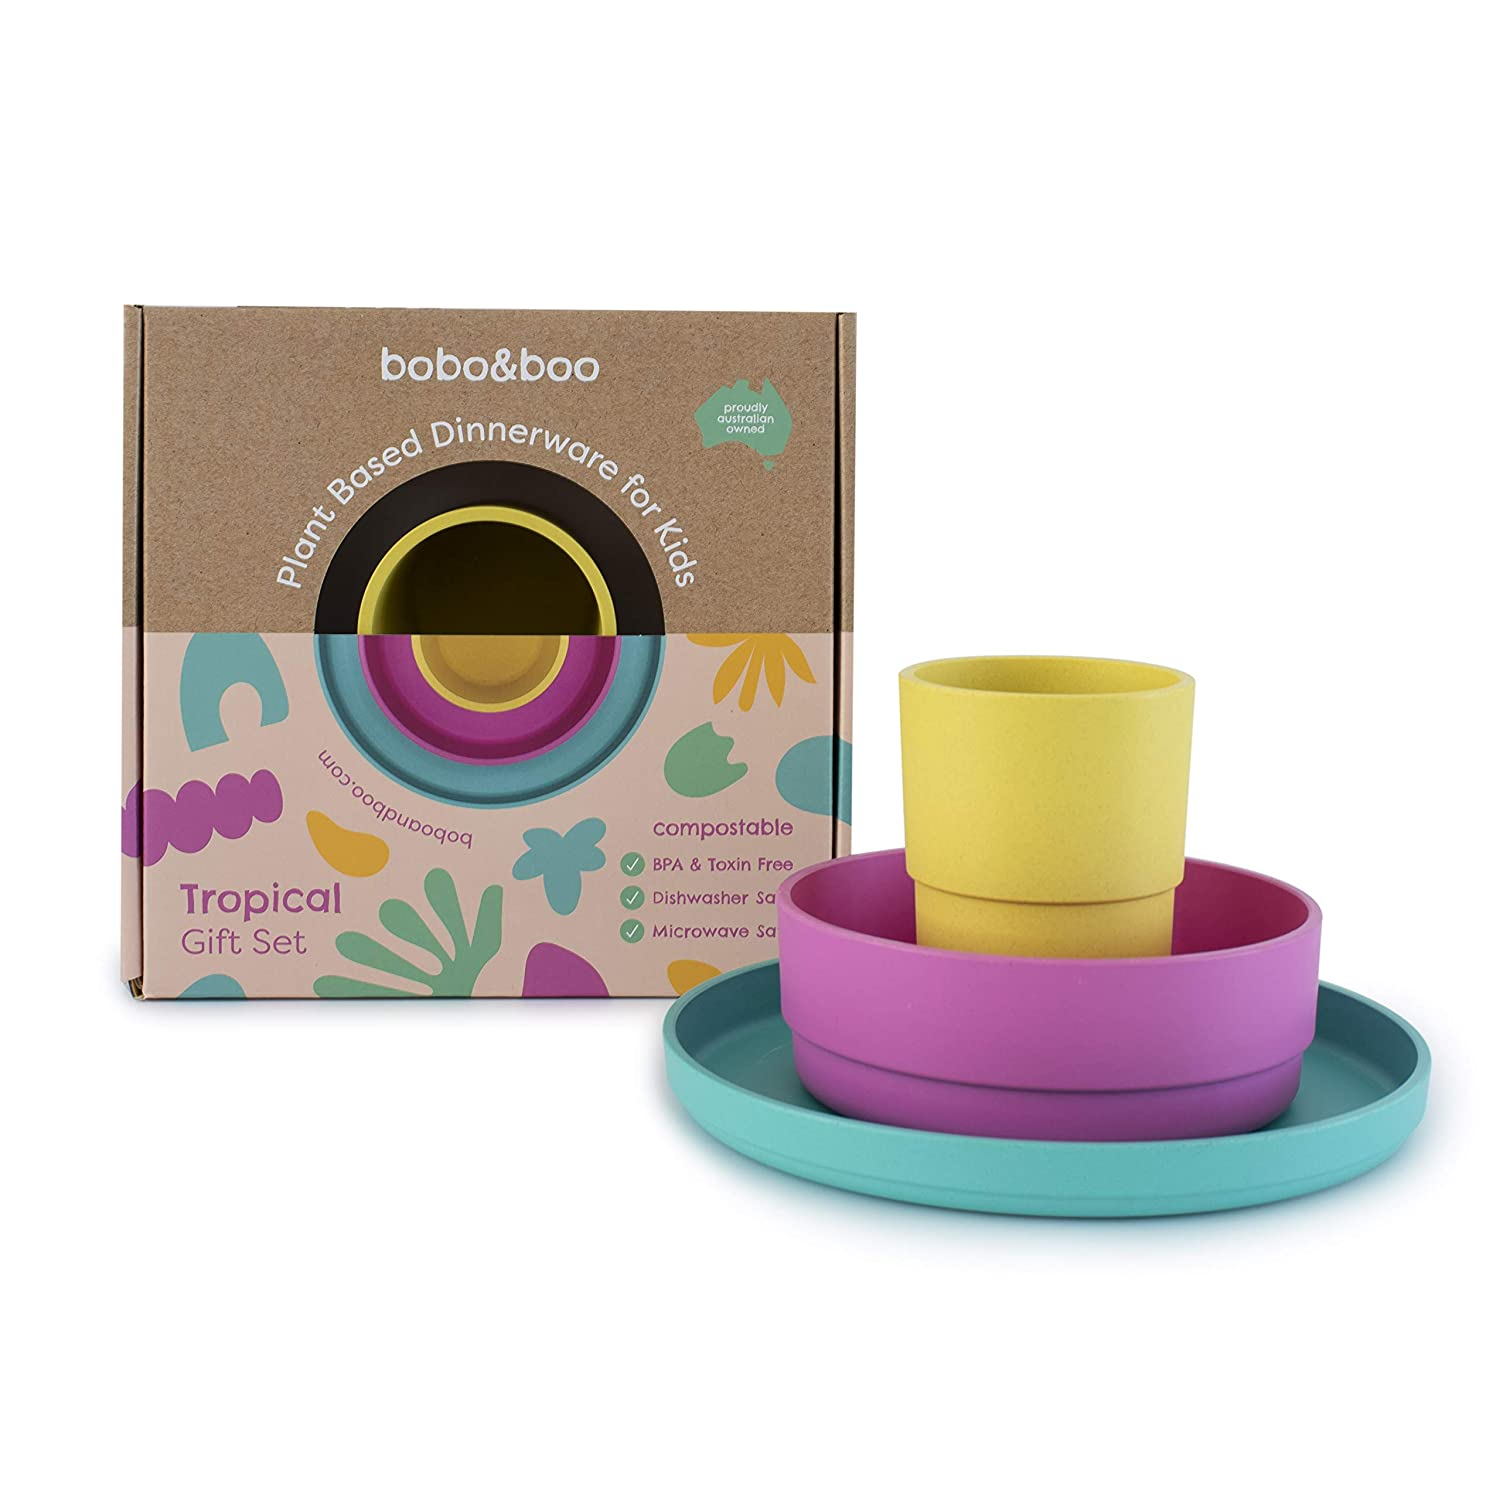 BOBO&BOO Plant-Based Dinnerware Set for Children, 3 Pieces - Eco-Friendly Kids Dishes, Microwave and Dishwasher Safe - Biodegradable Cups, Plates, and Bowls - Plant-Based Dishware - TROPICAL